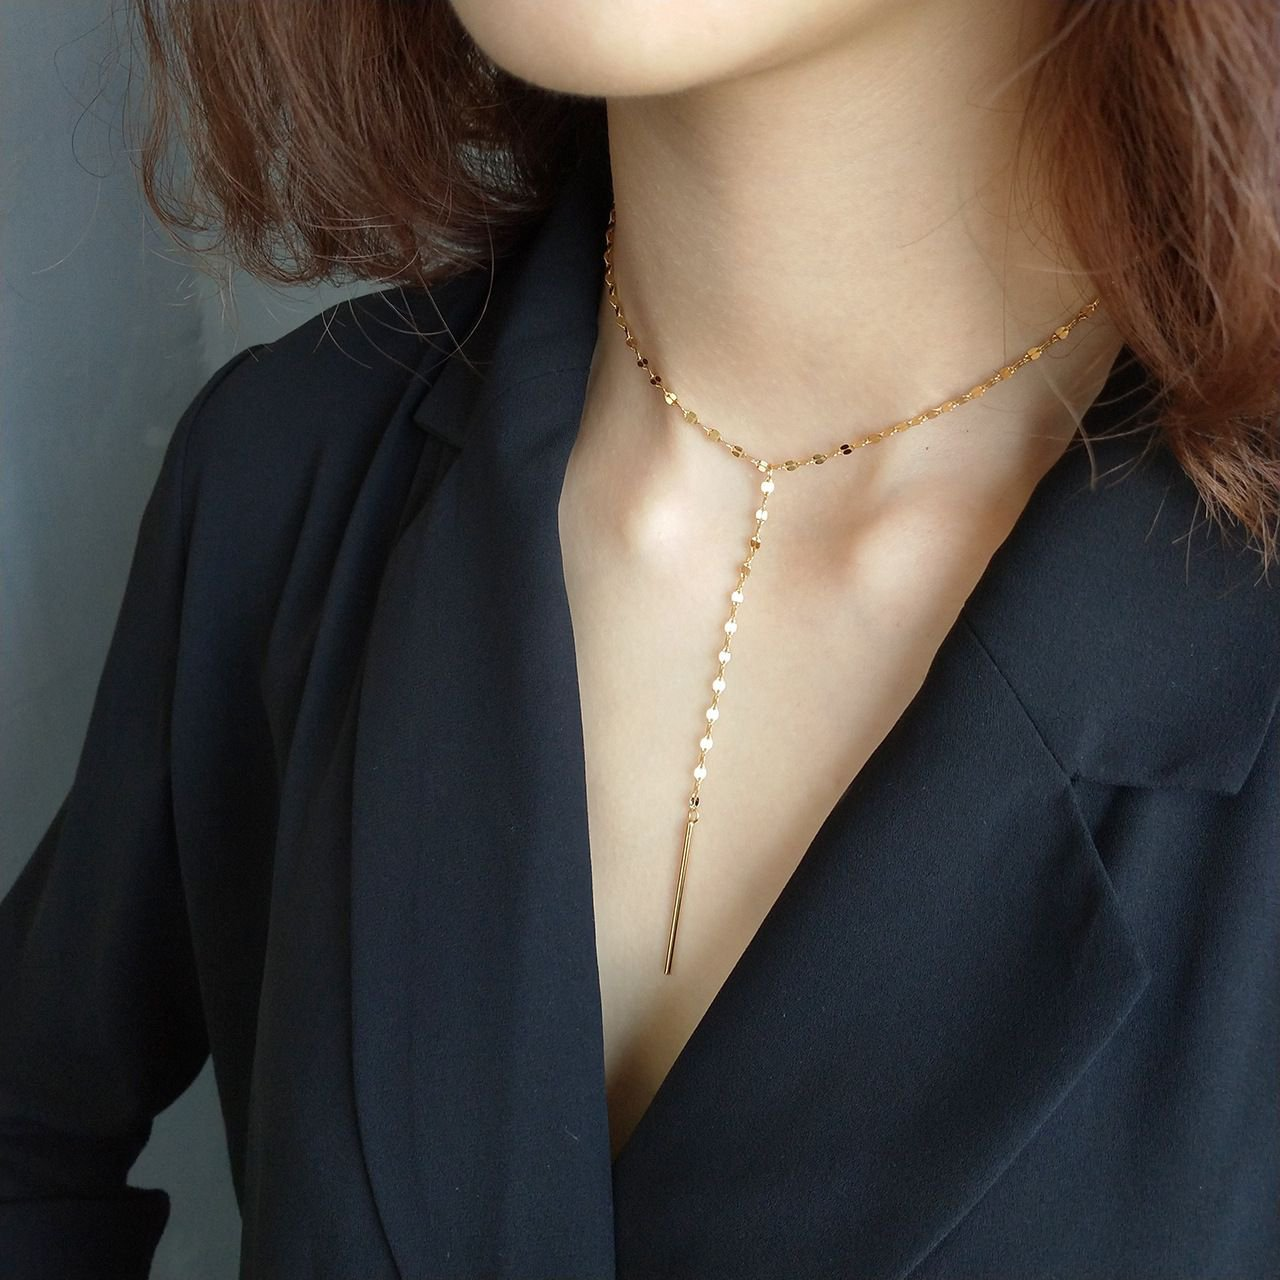 Lip Chain 925 Sterling Silver Adjustable Dangling Necklace